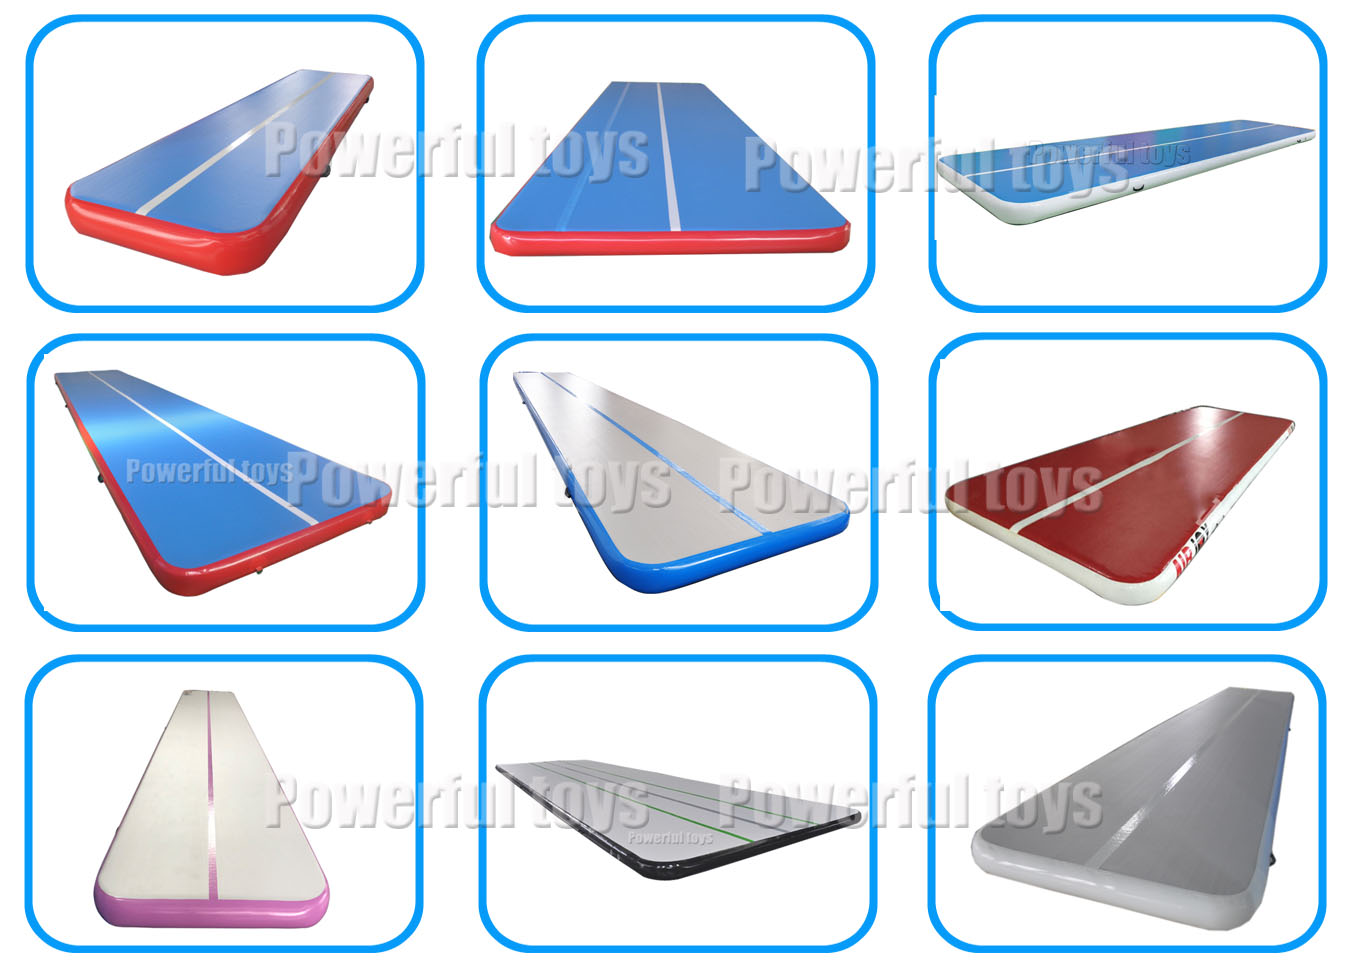 Customized  air track inflatable airtrack sample for sale